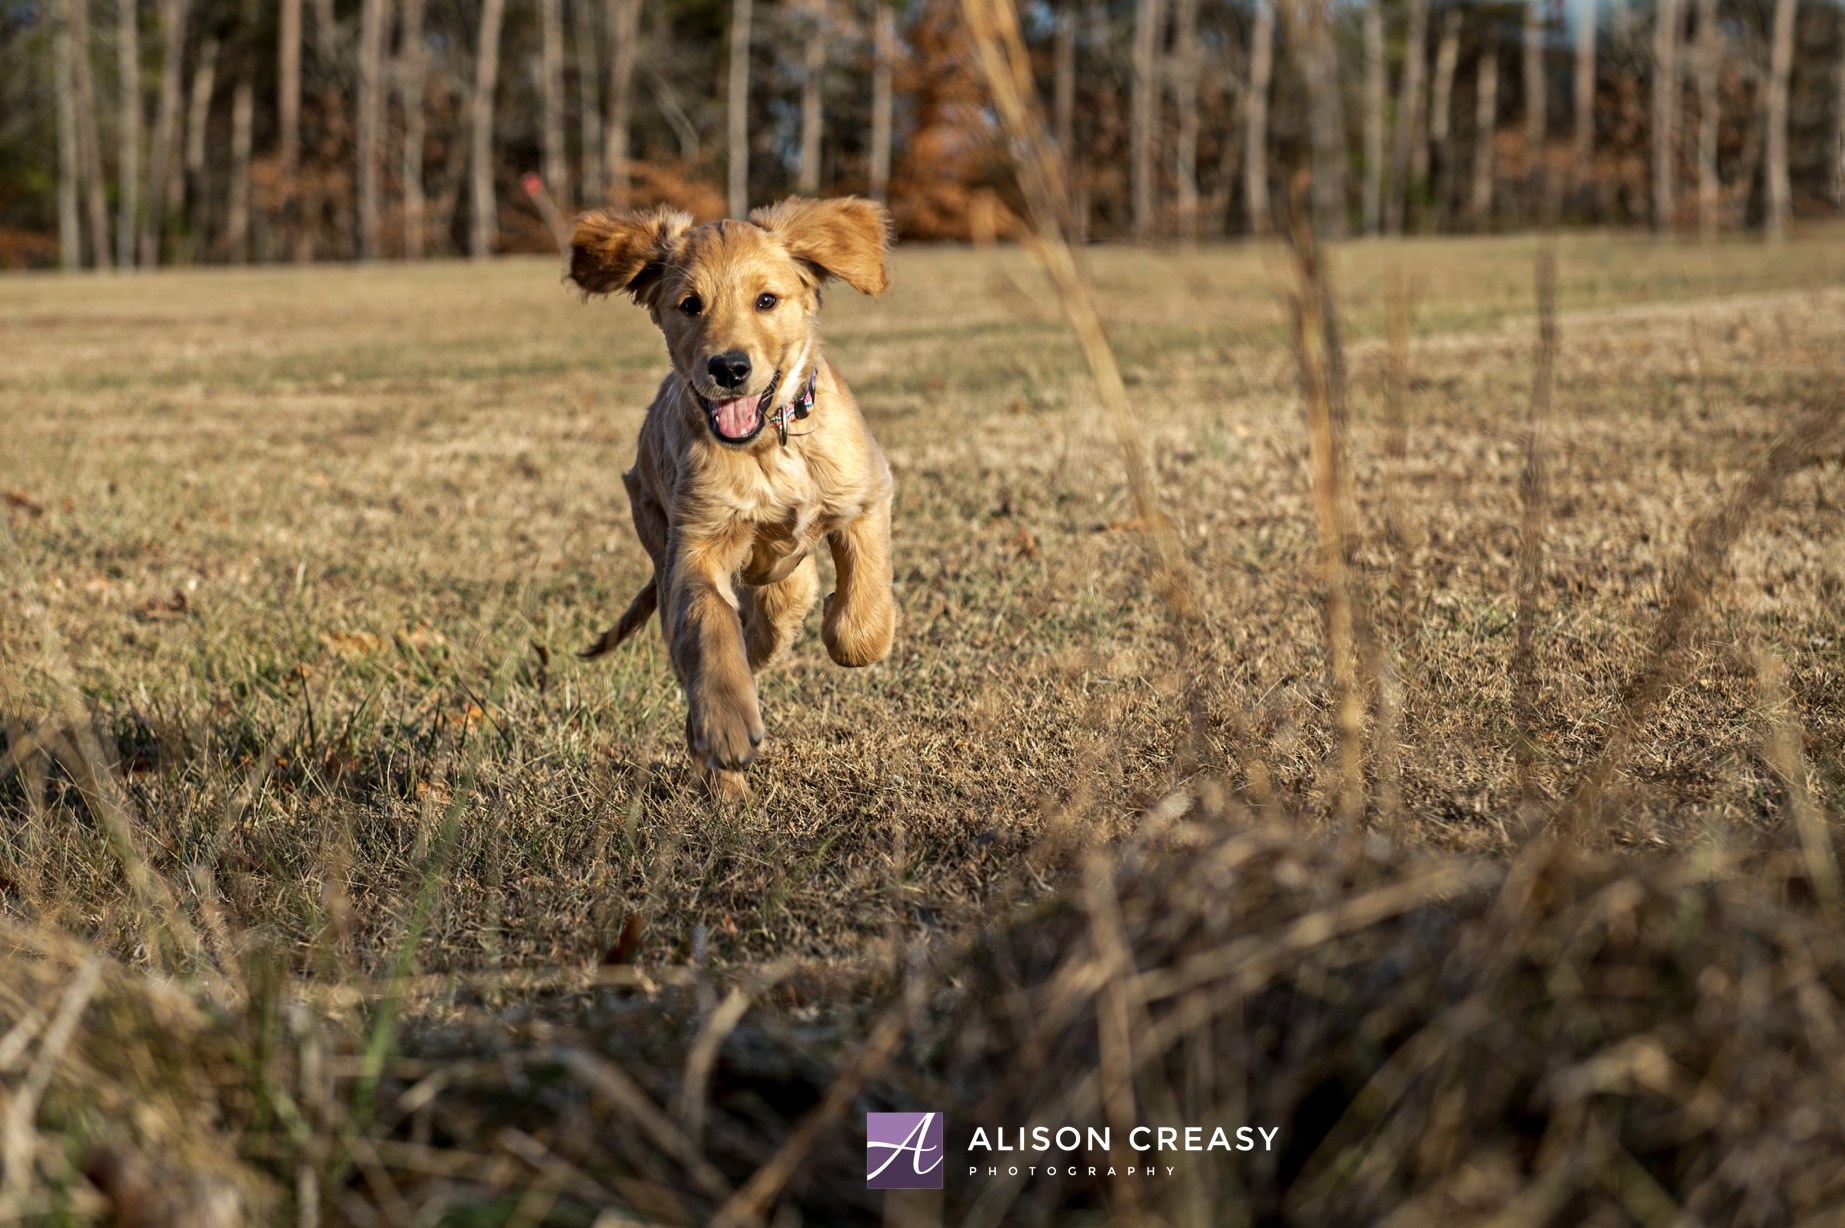 Alison-Creasy-Photography-Lynchburg-VA-Pet-Photographer_0011.jpg